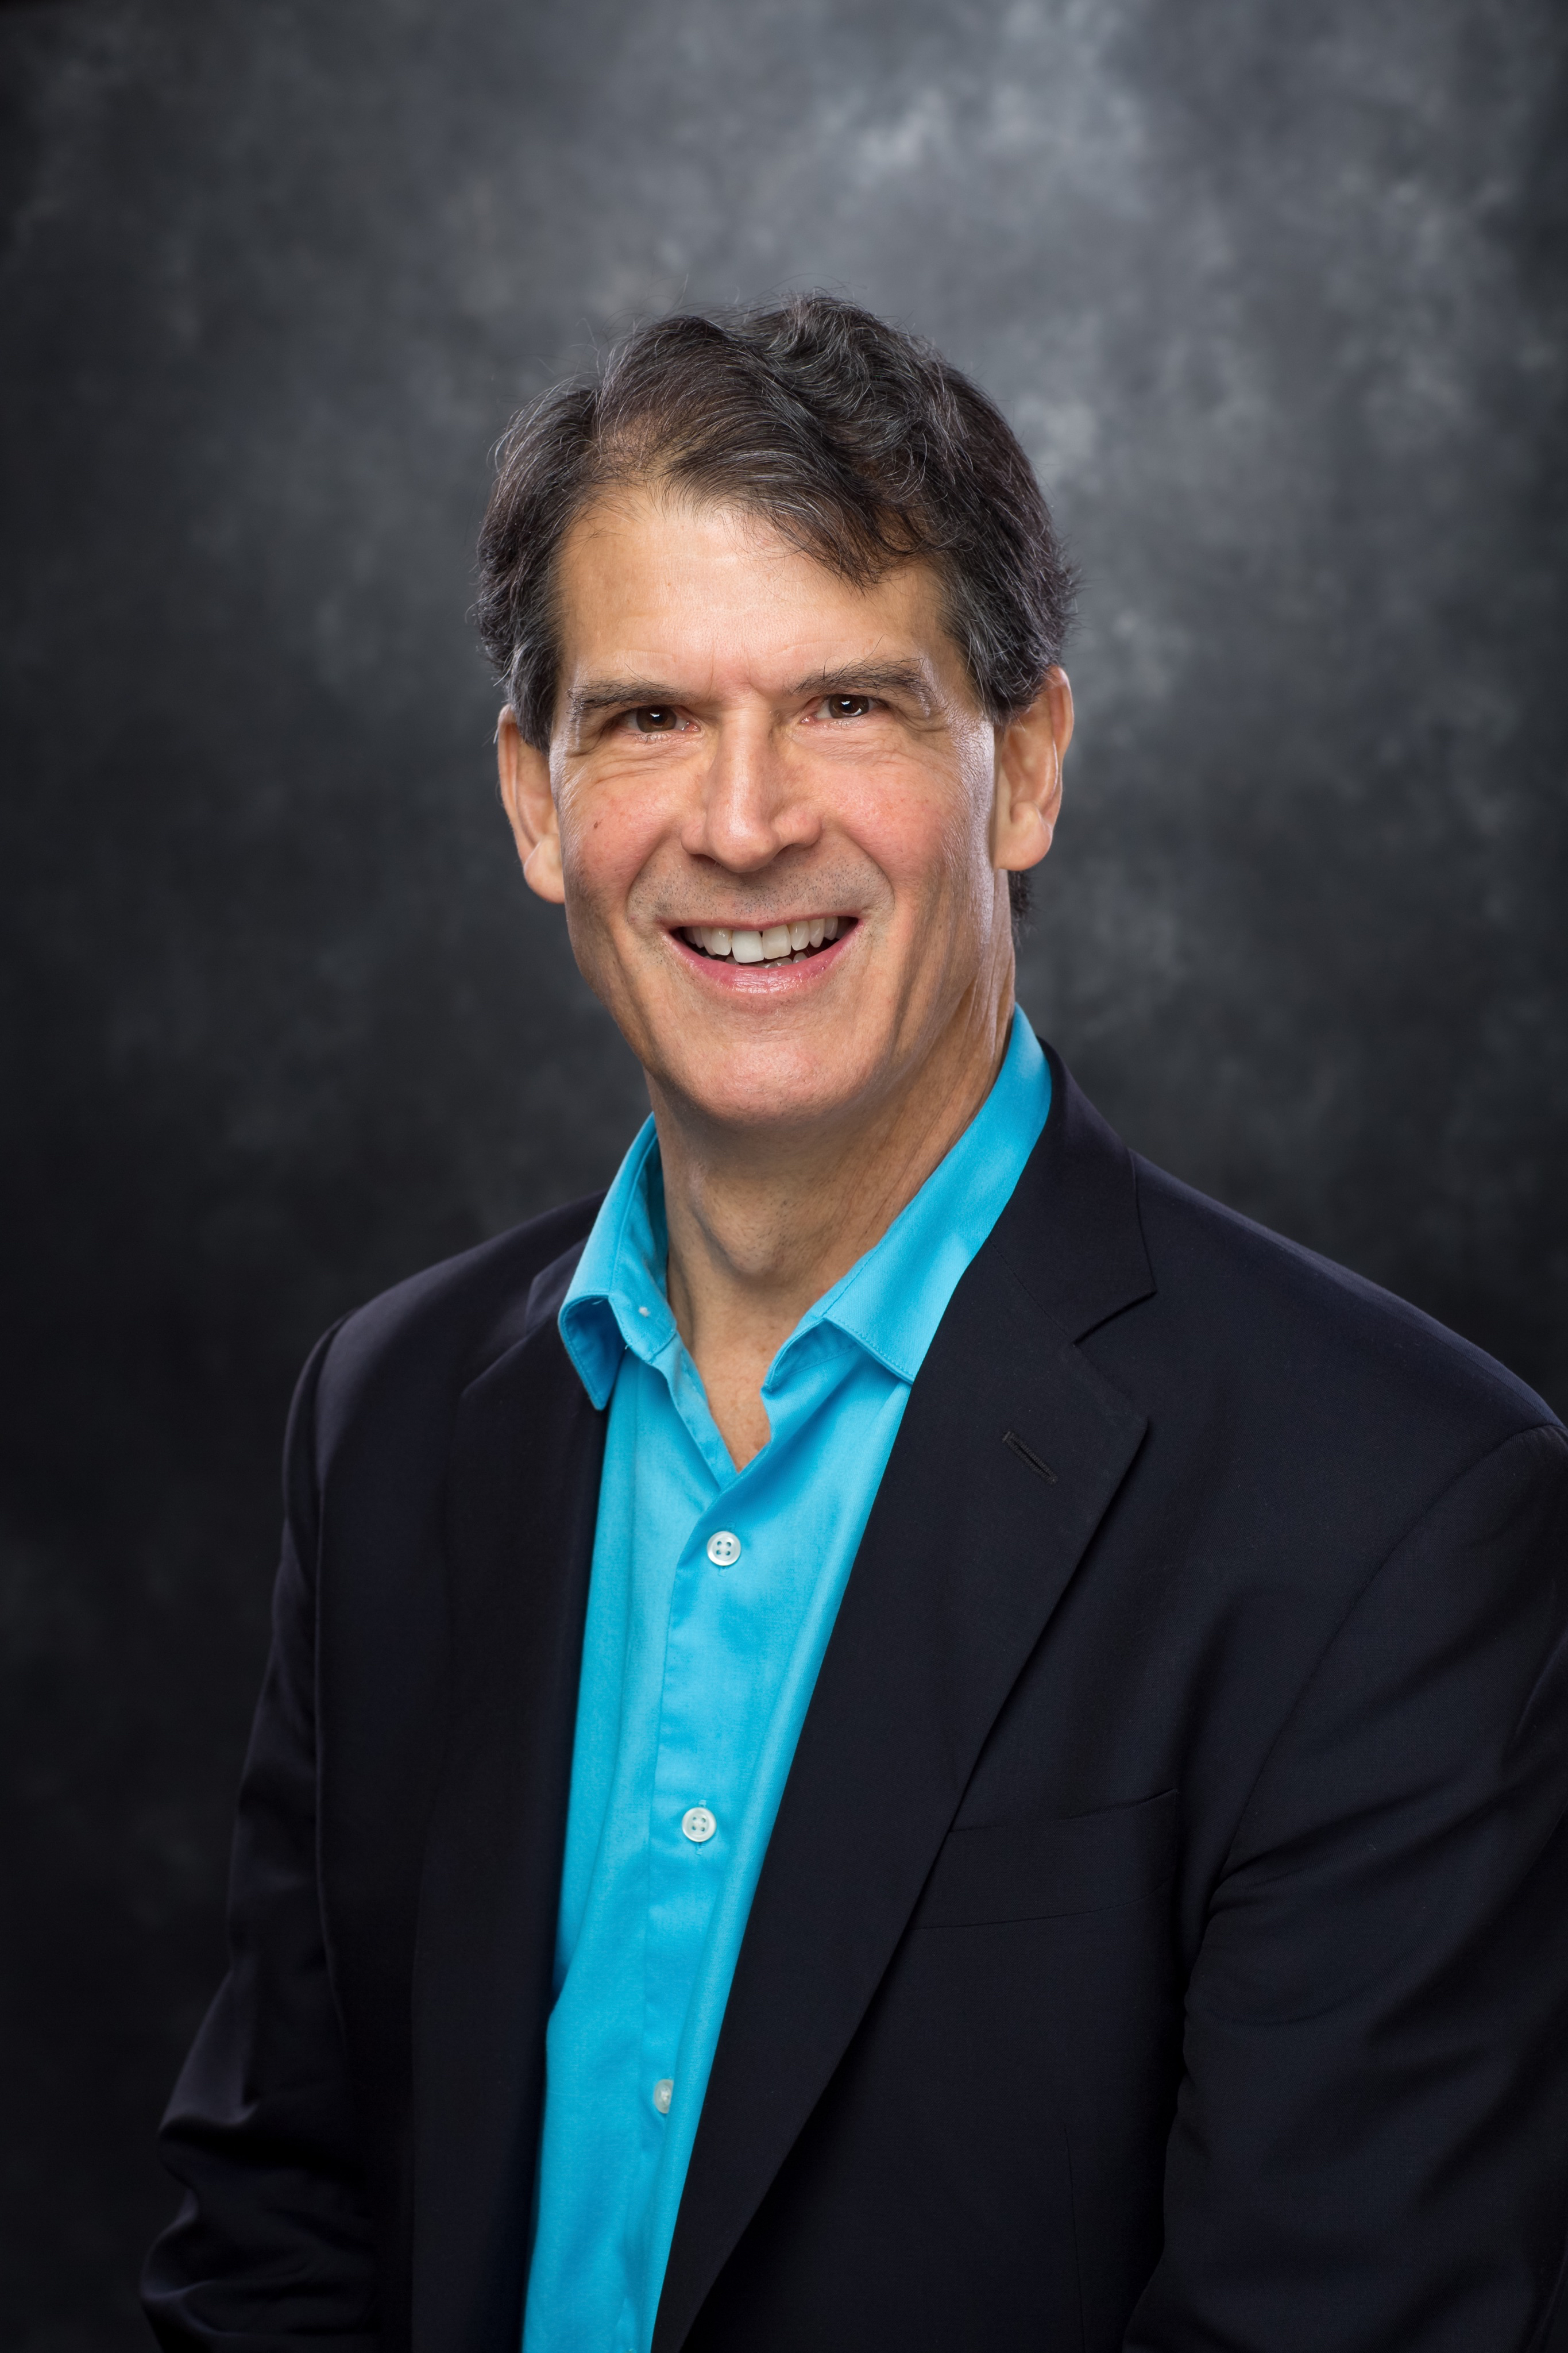 Eben Alexander III, MD on Overcoming Struggles and Finding Spiritual Growth